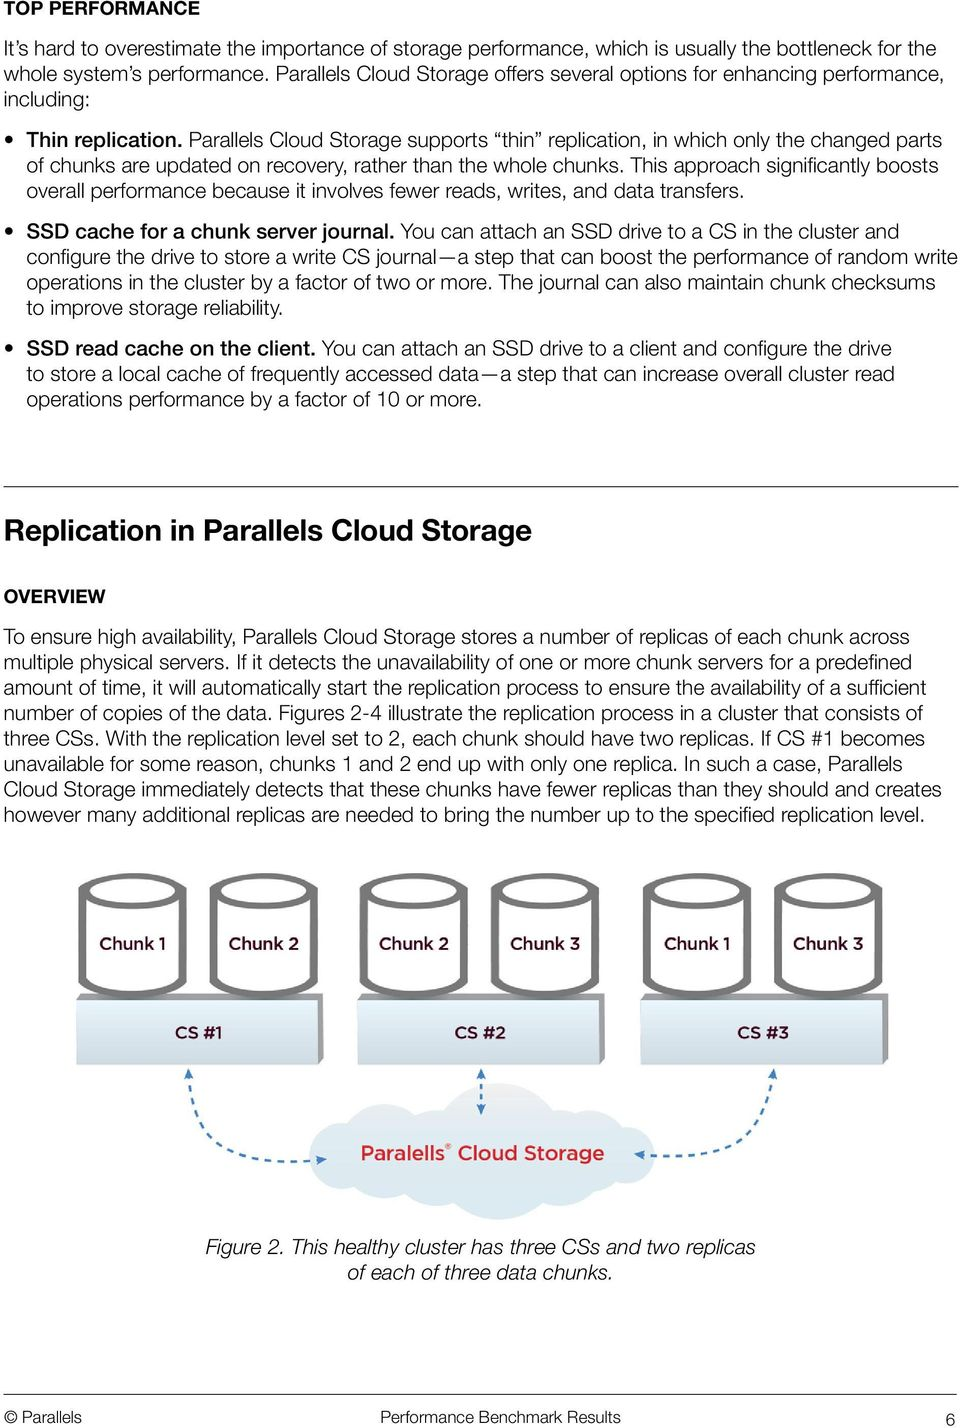 Parallels Cloud Storage supports thin replication, in which only the changed parts of chunks are updated on recovery, rather than the whole chunks.